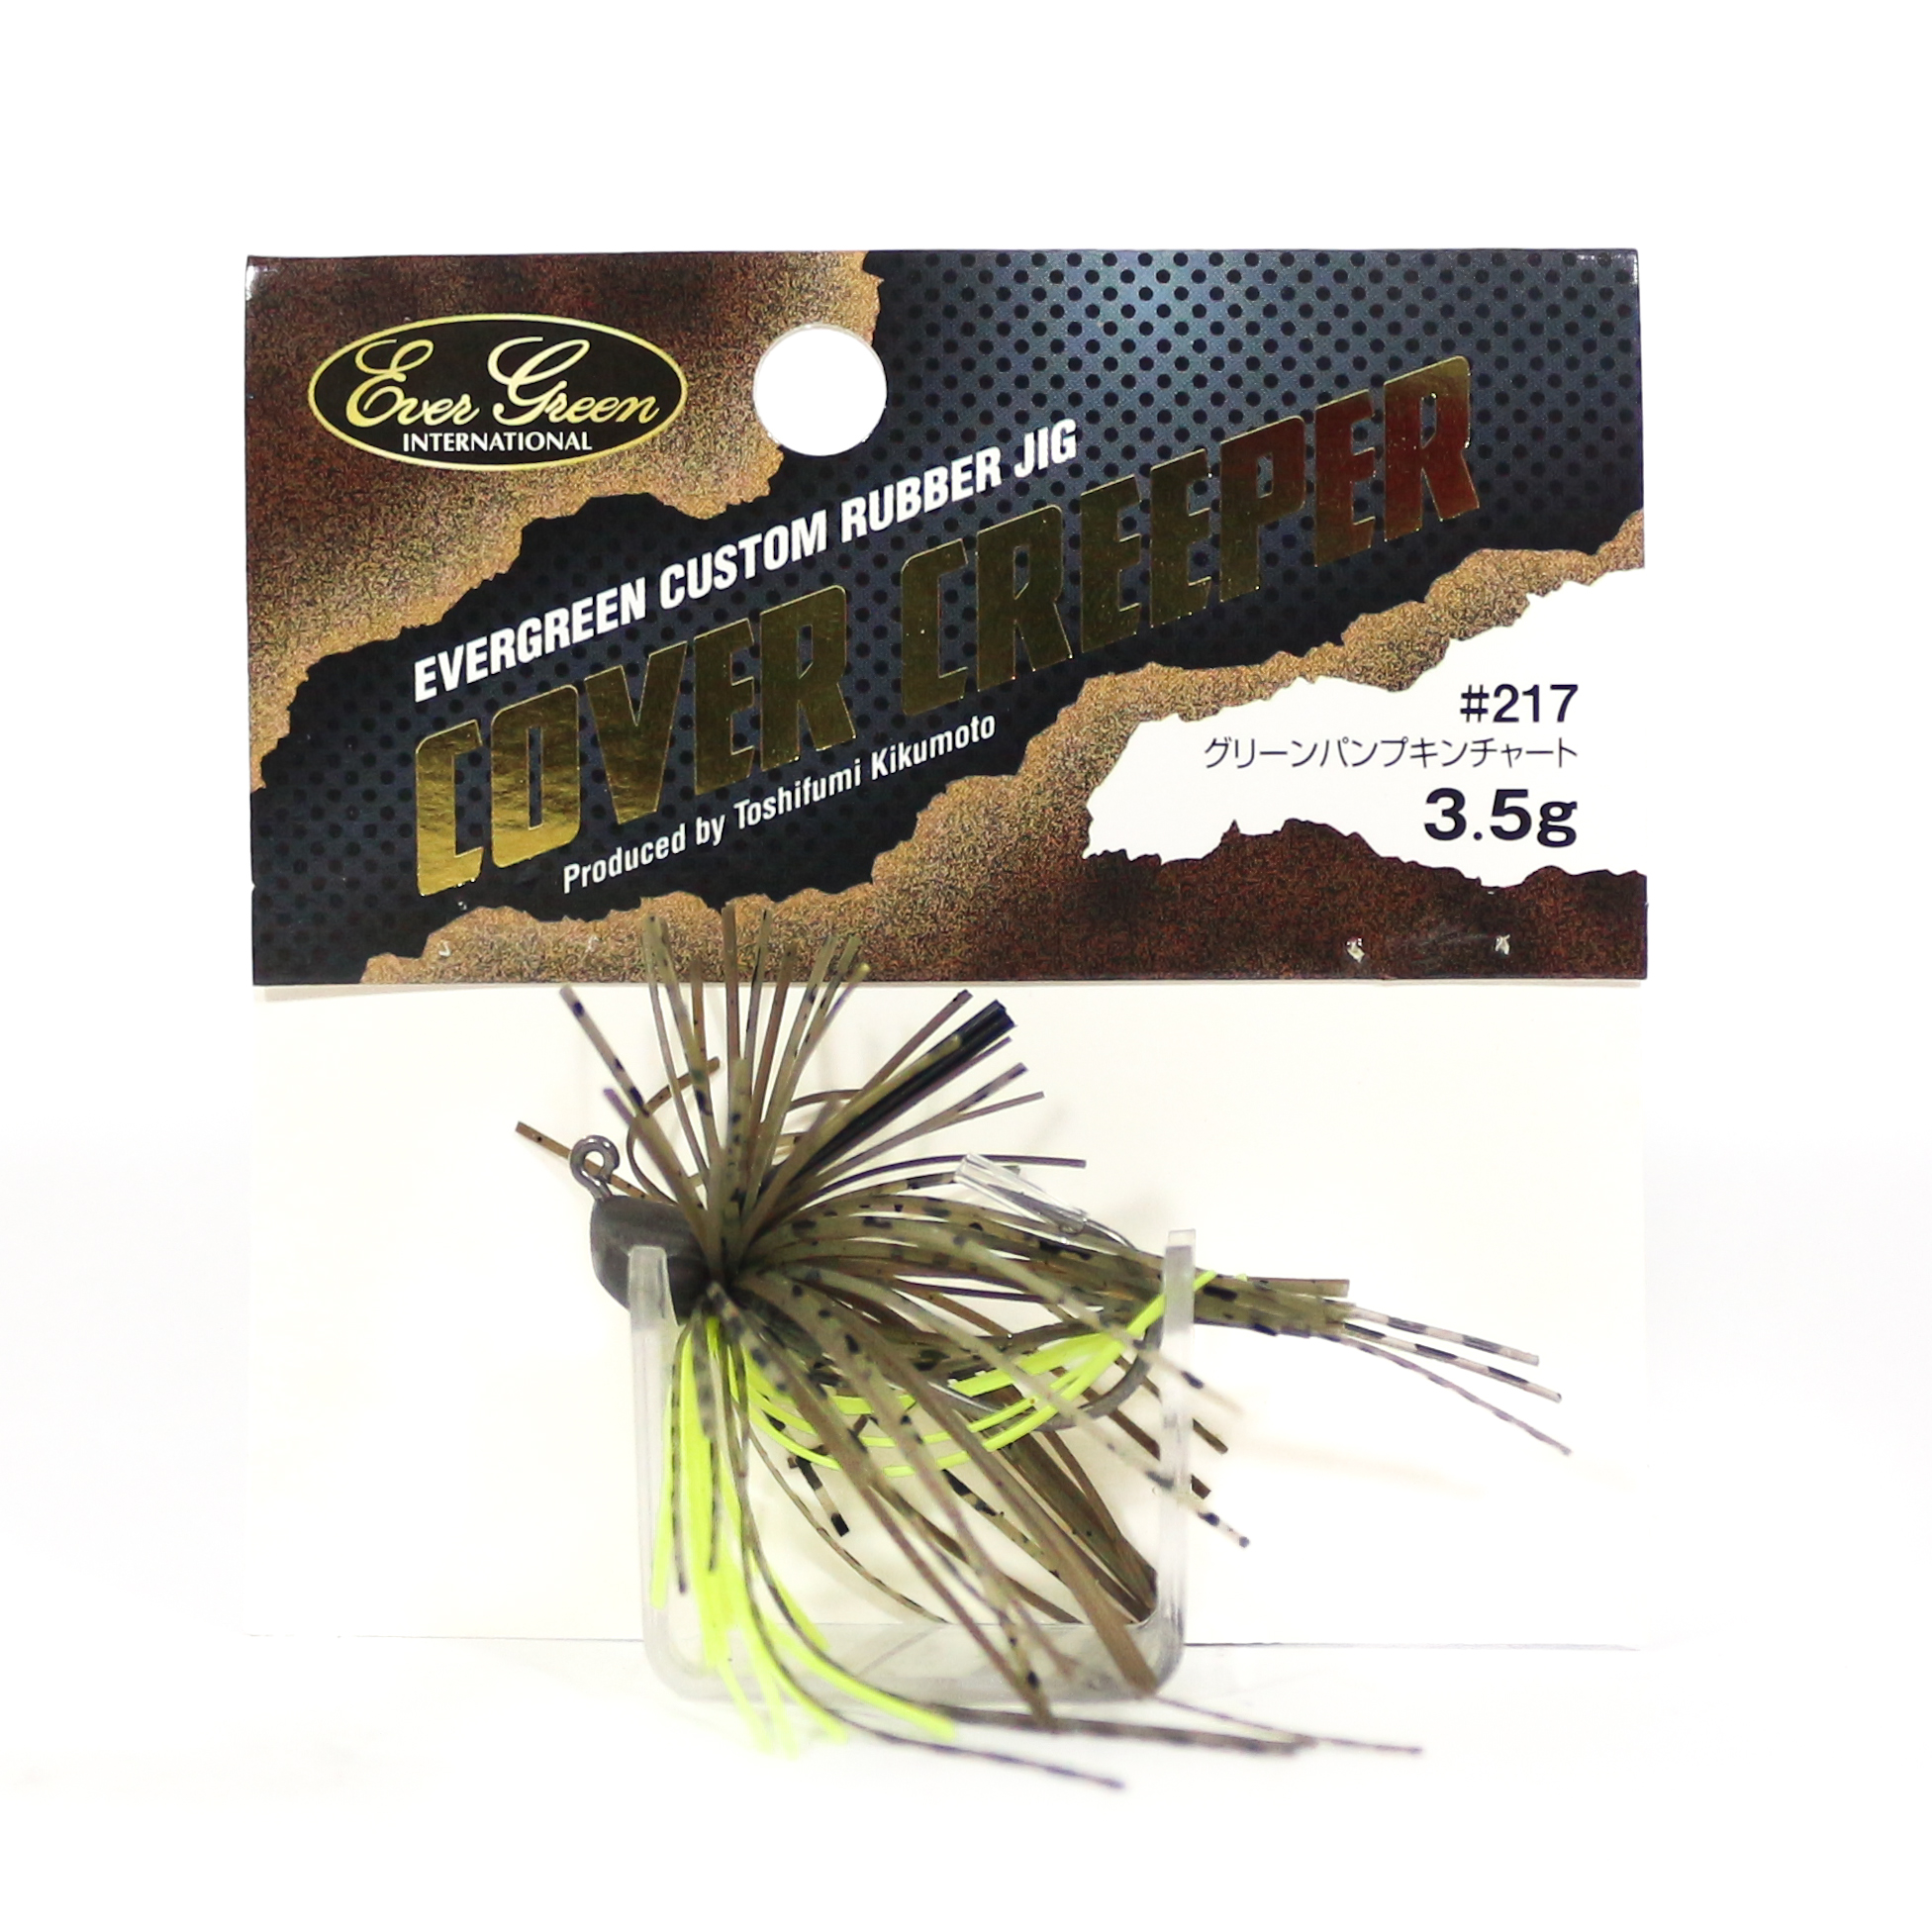 Evergreen Rubber Jig Cover Creeper 3.5g Sinking Lure 217 (3474)